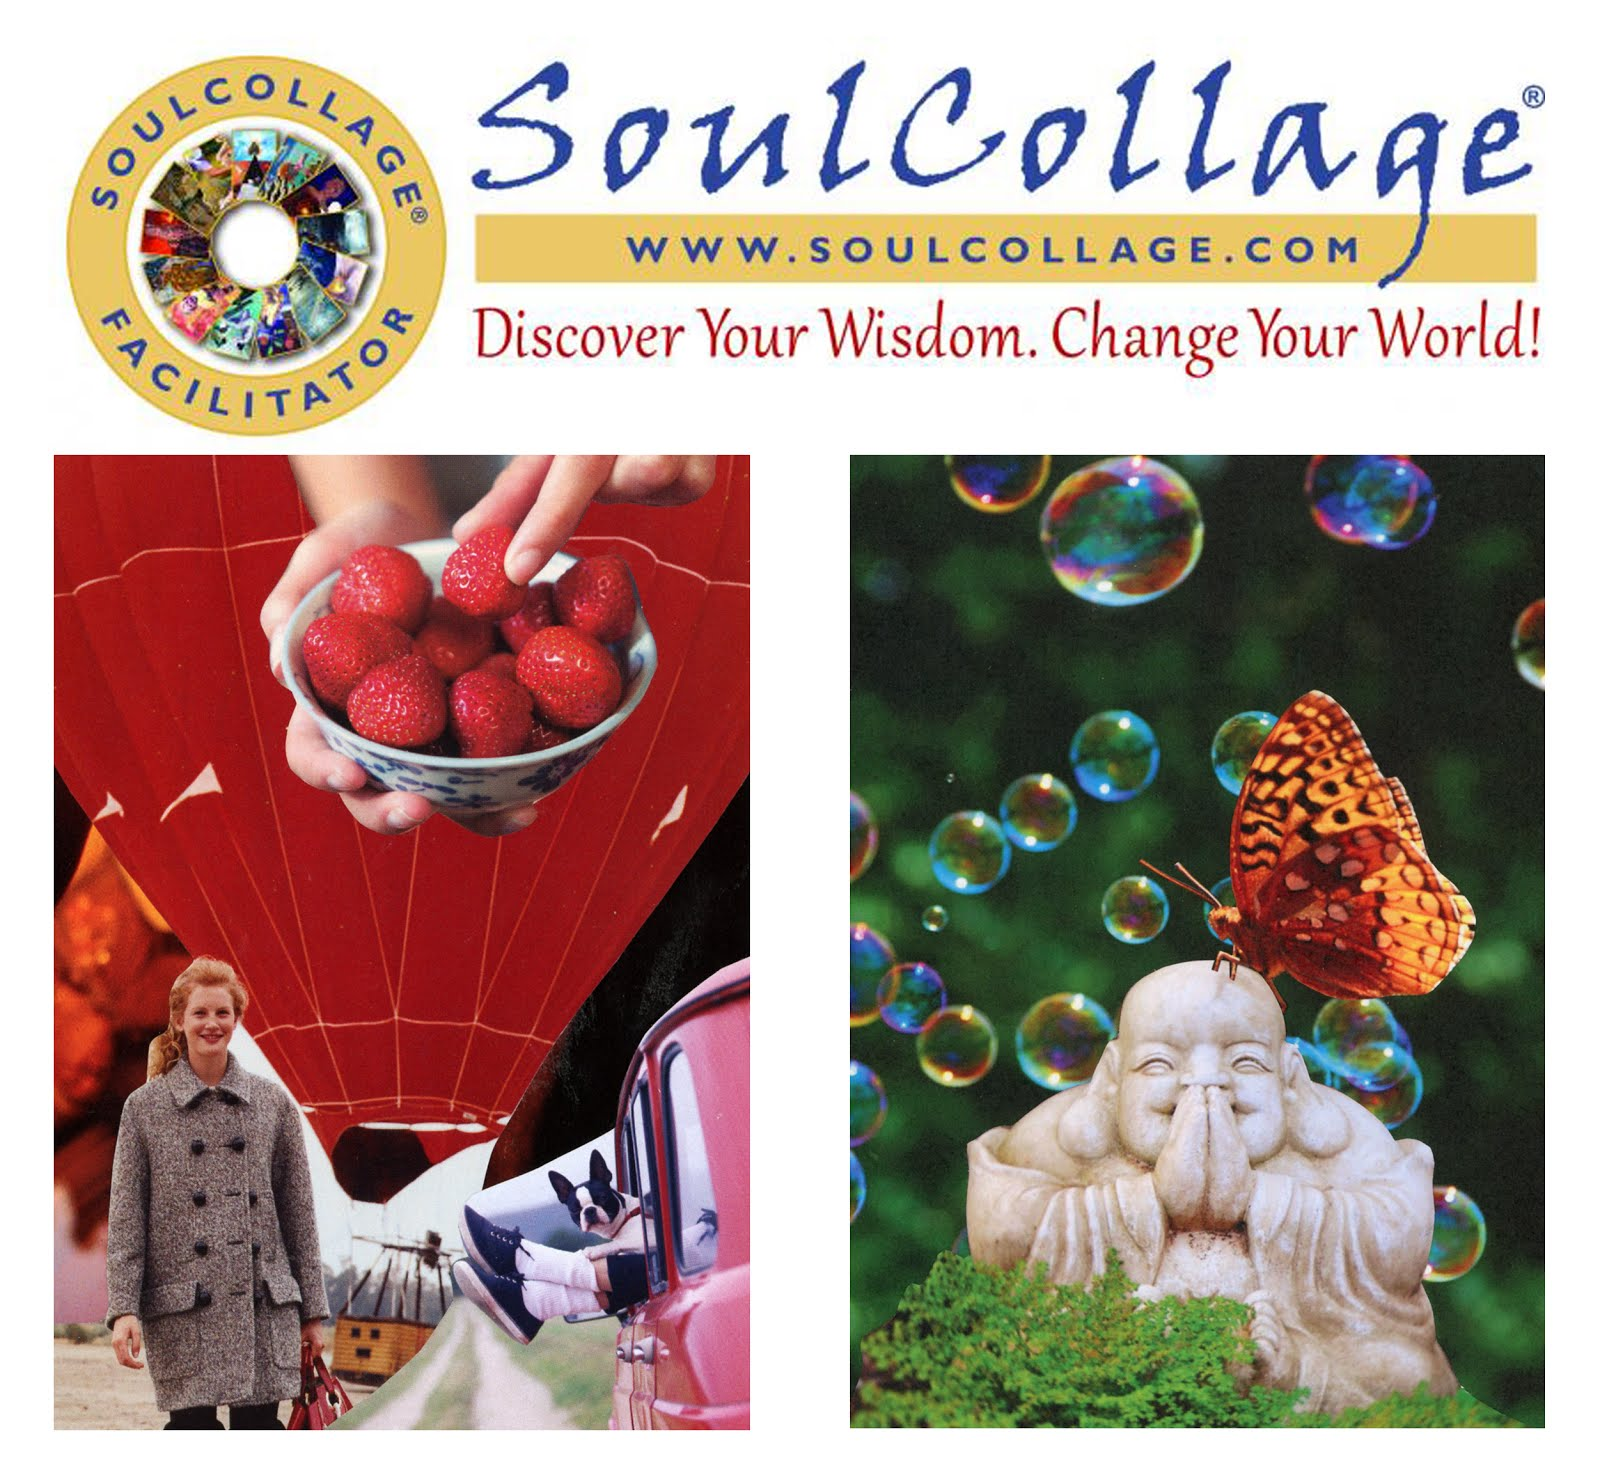 SoulCollage® as a Creative Self-Care Practice